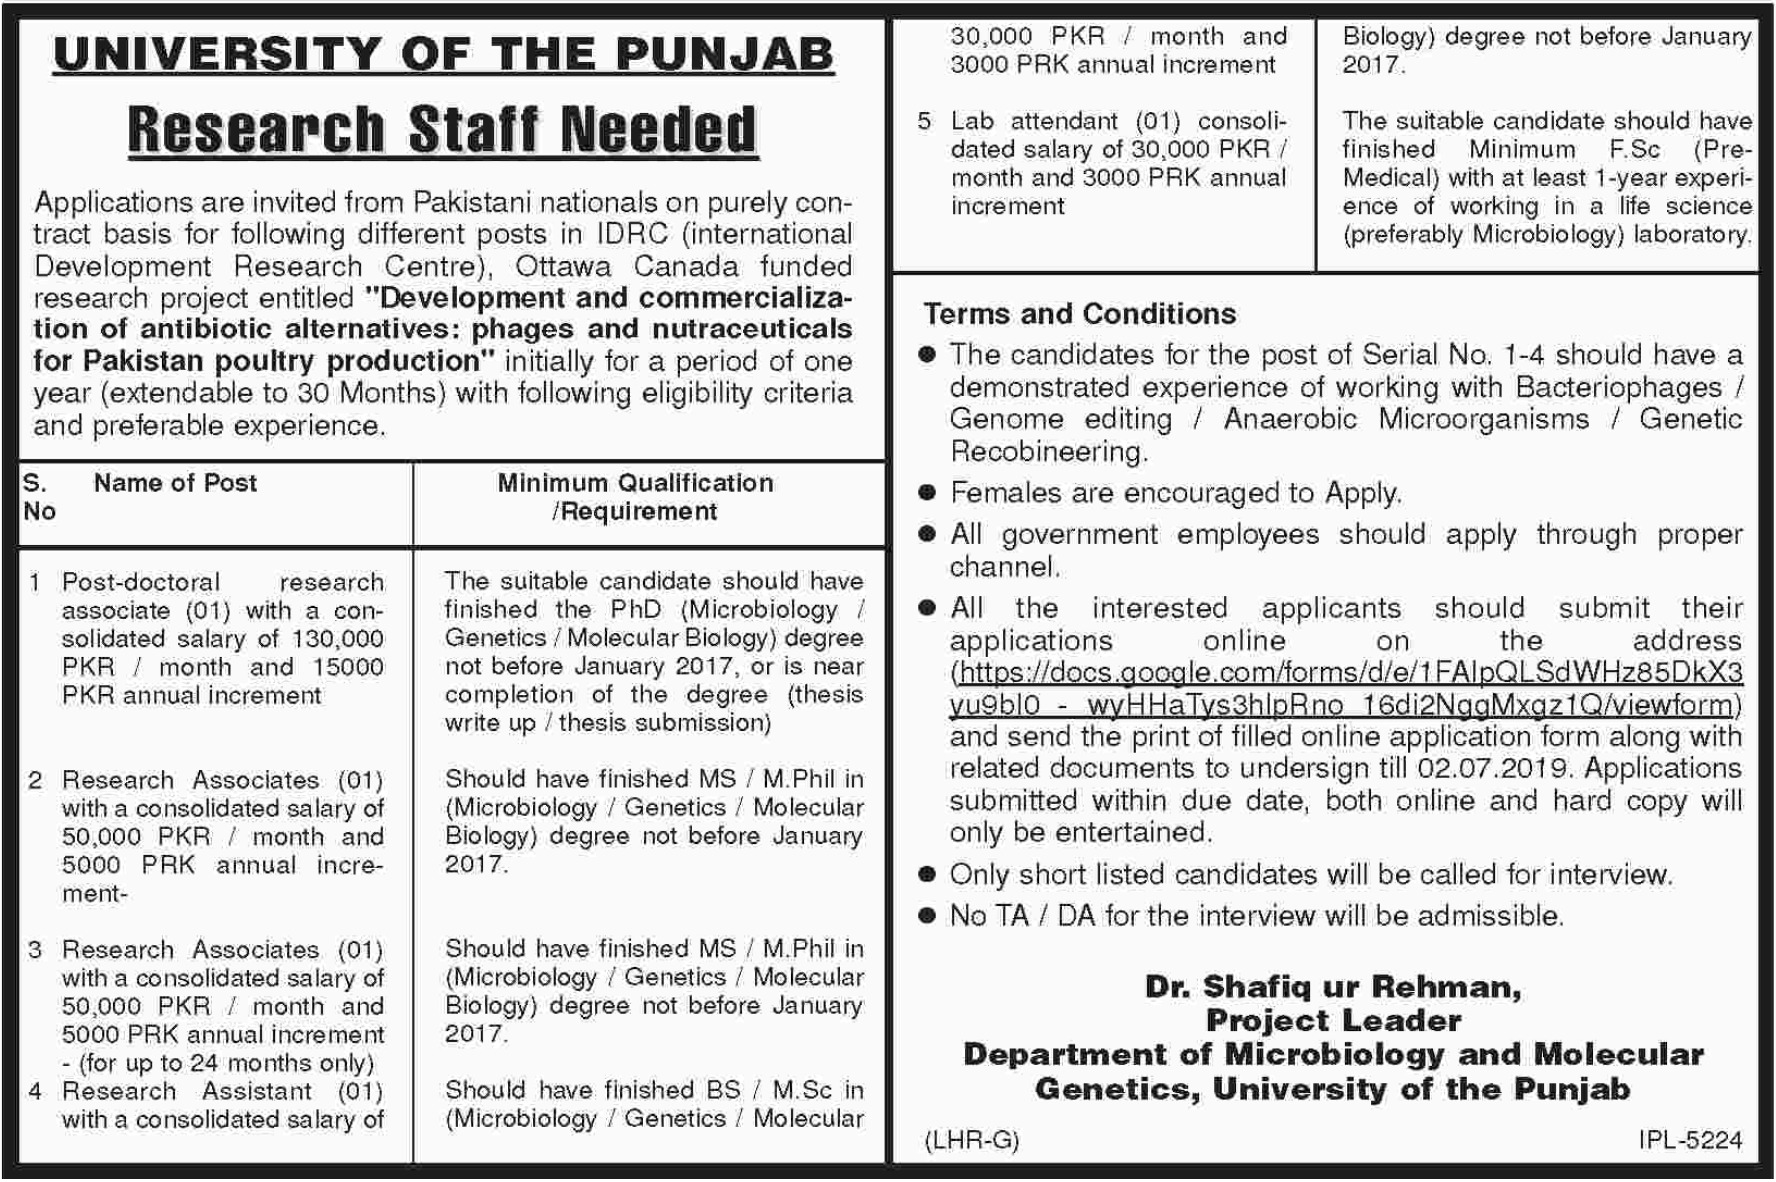 University of the Punjab Jobs 2019 PU Research Staff